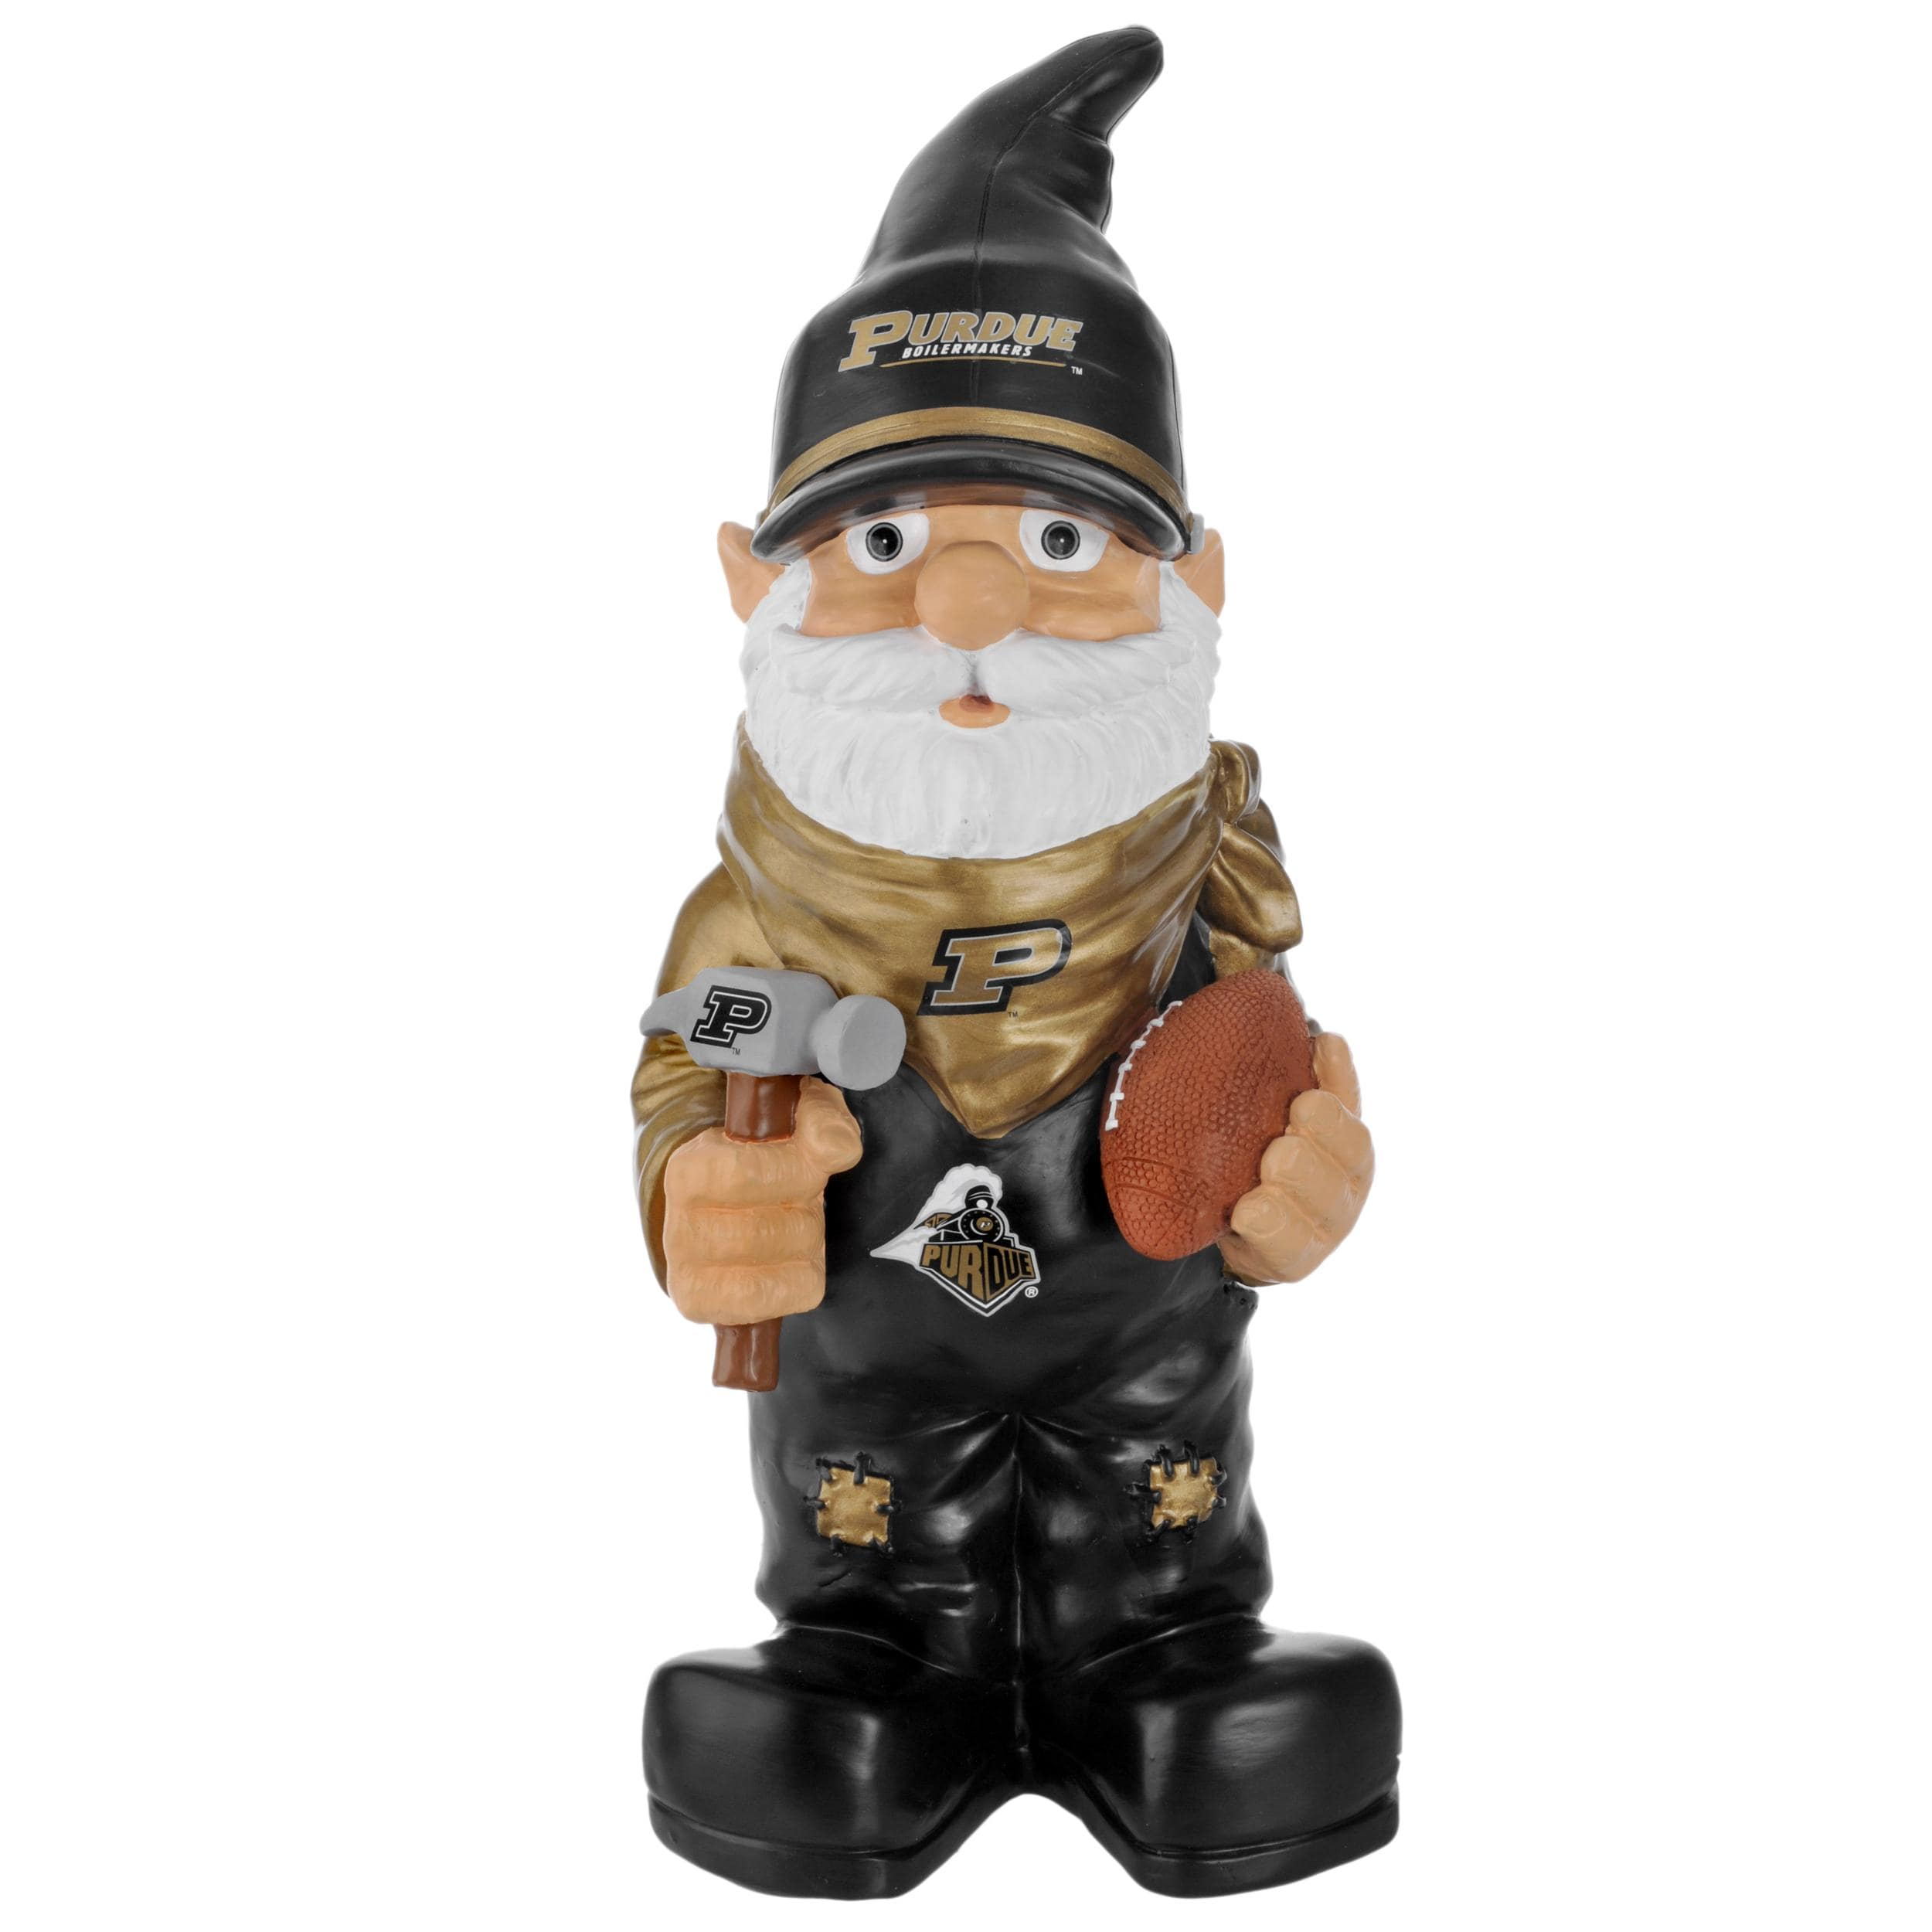 Purdue Boilermakers 11-inch Thematic Garden Gnome - Thumbnail 1